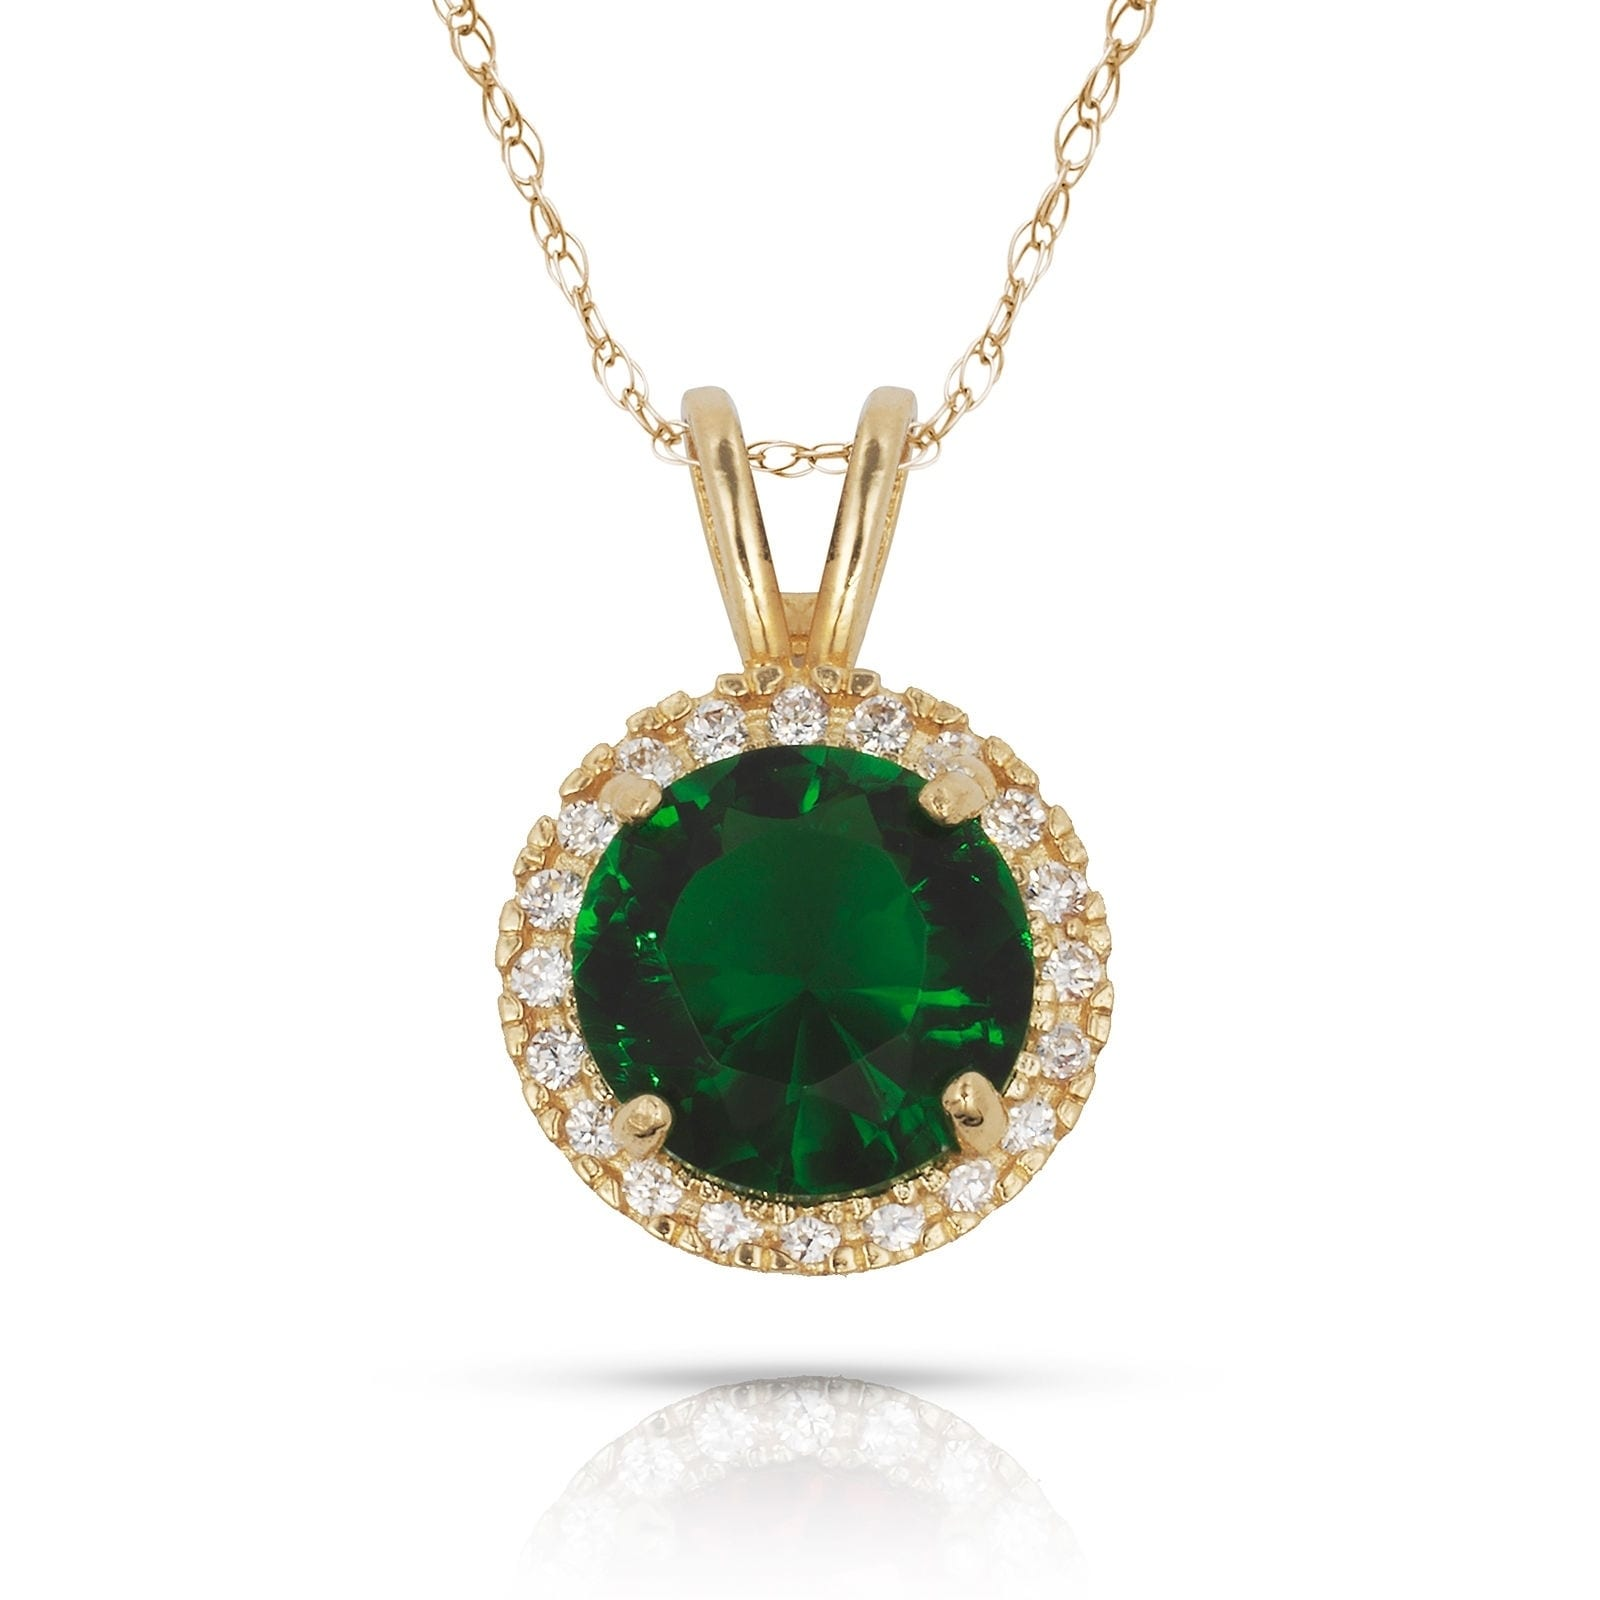 14K White Gold Necklace with Round Green Cubic Zirconia 18 Inches